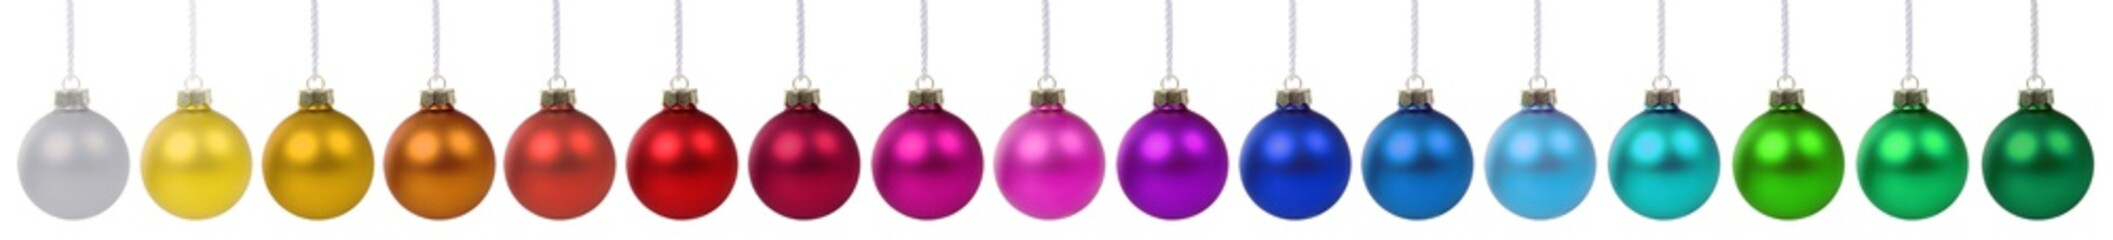 Christmas balls baubles banner color colorful decoration in a row isolated on white